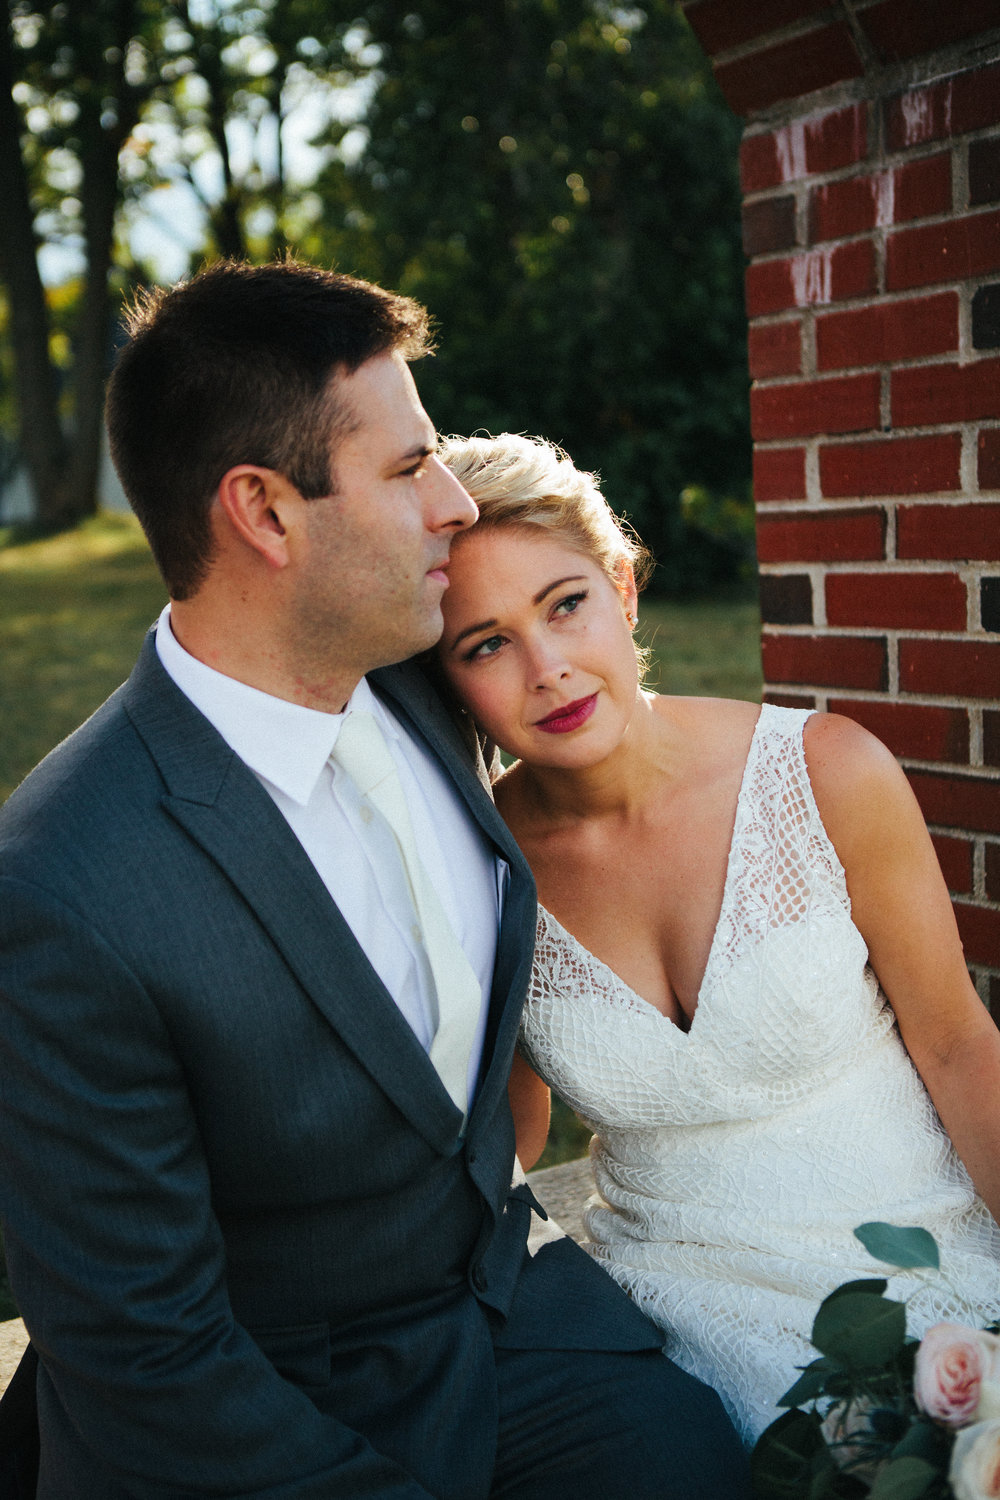 alicia+anthony-1369.jpg